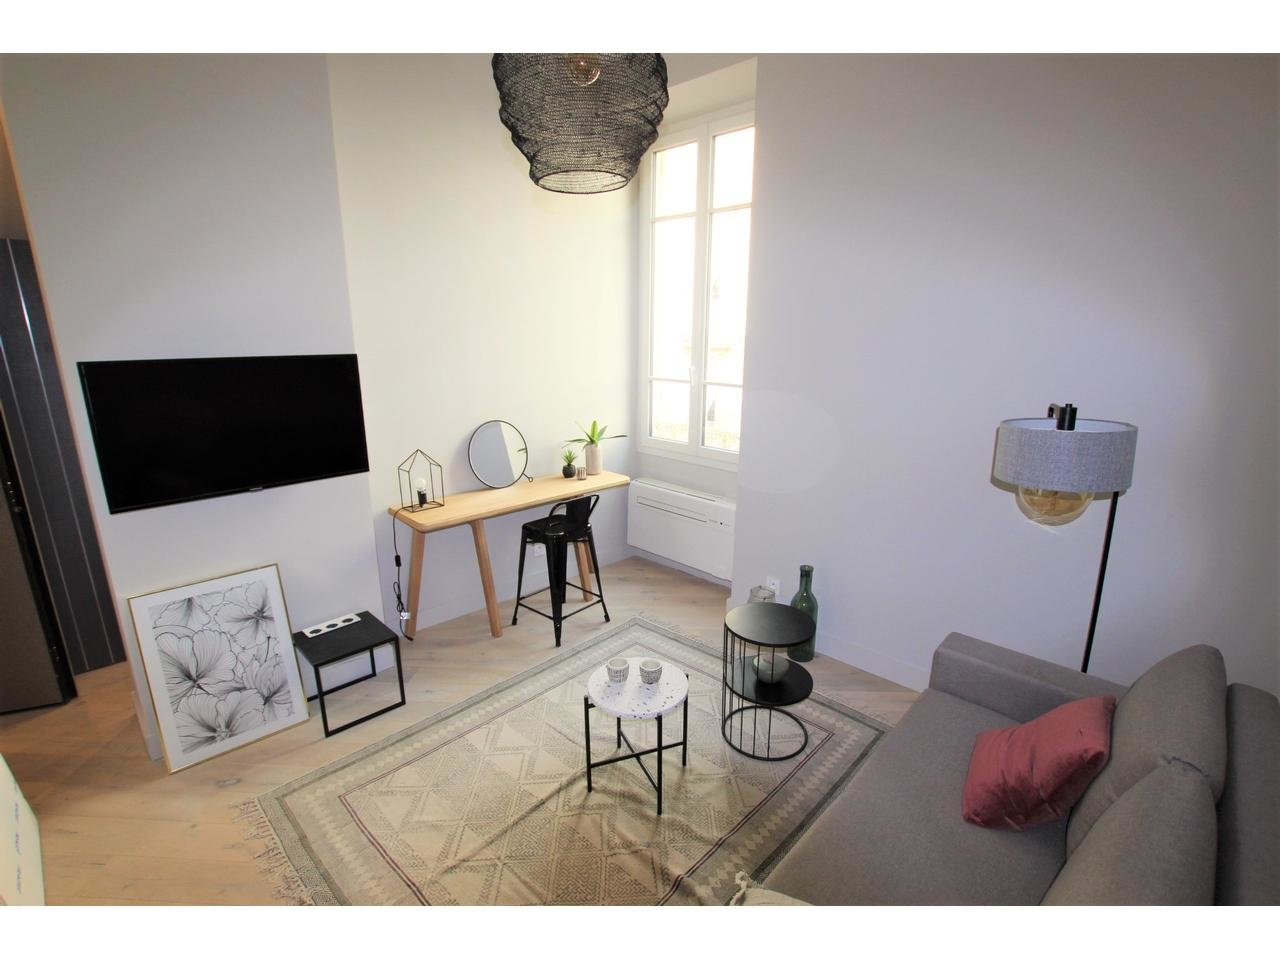 Studio in the heart of Nice